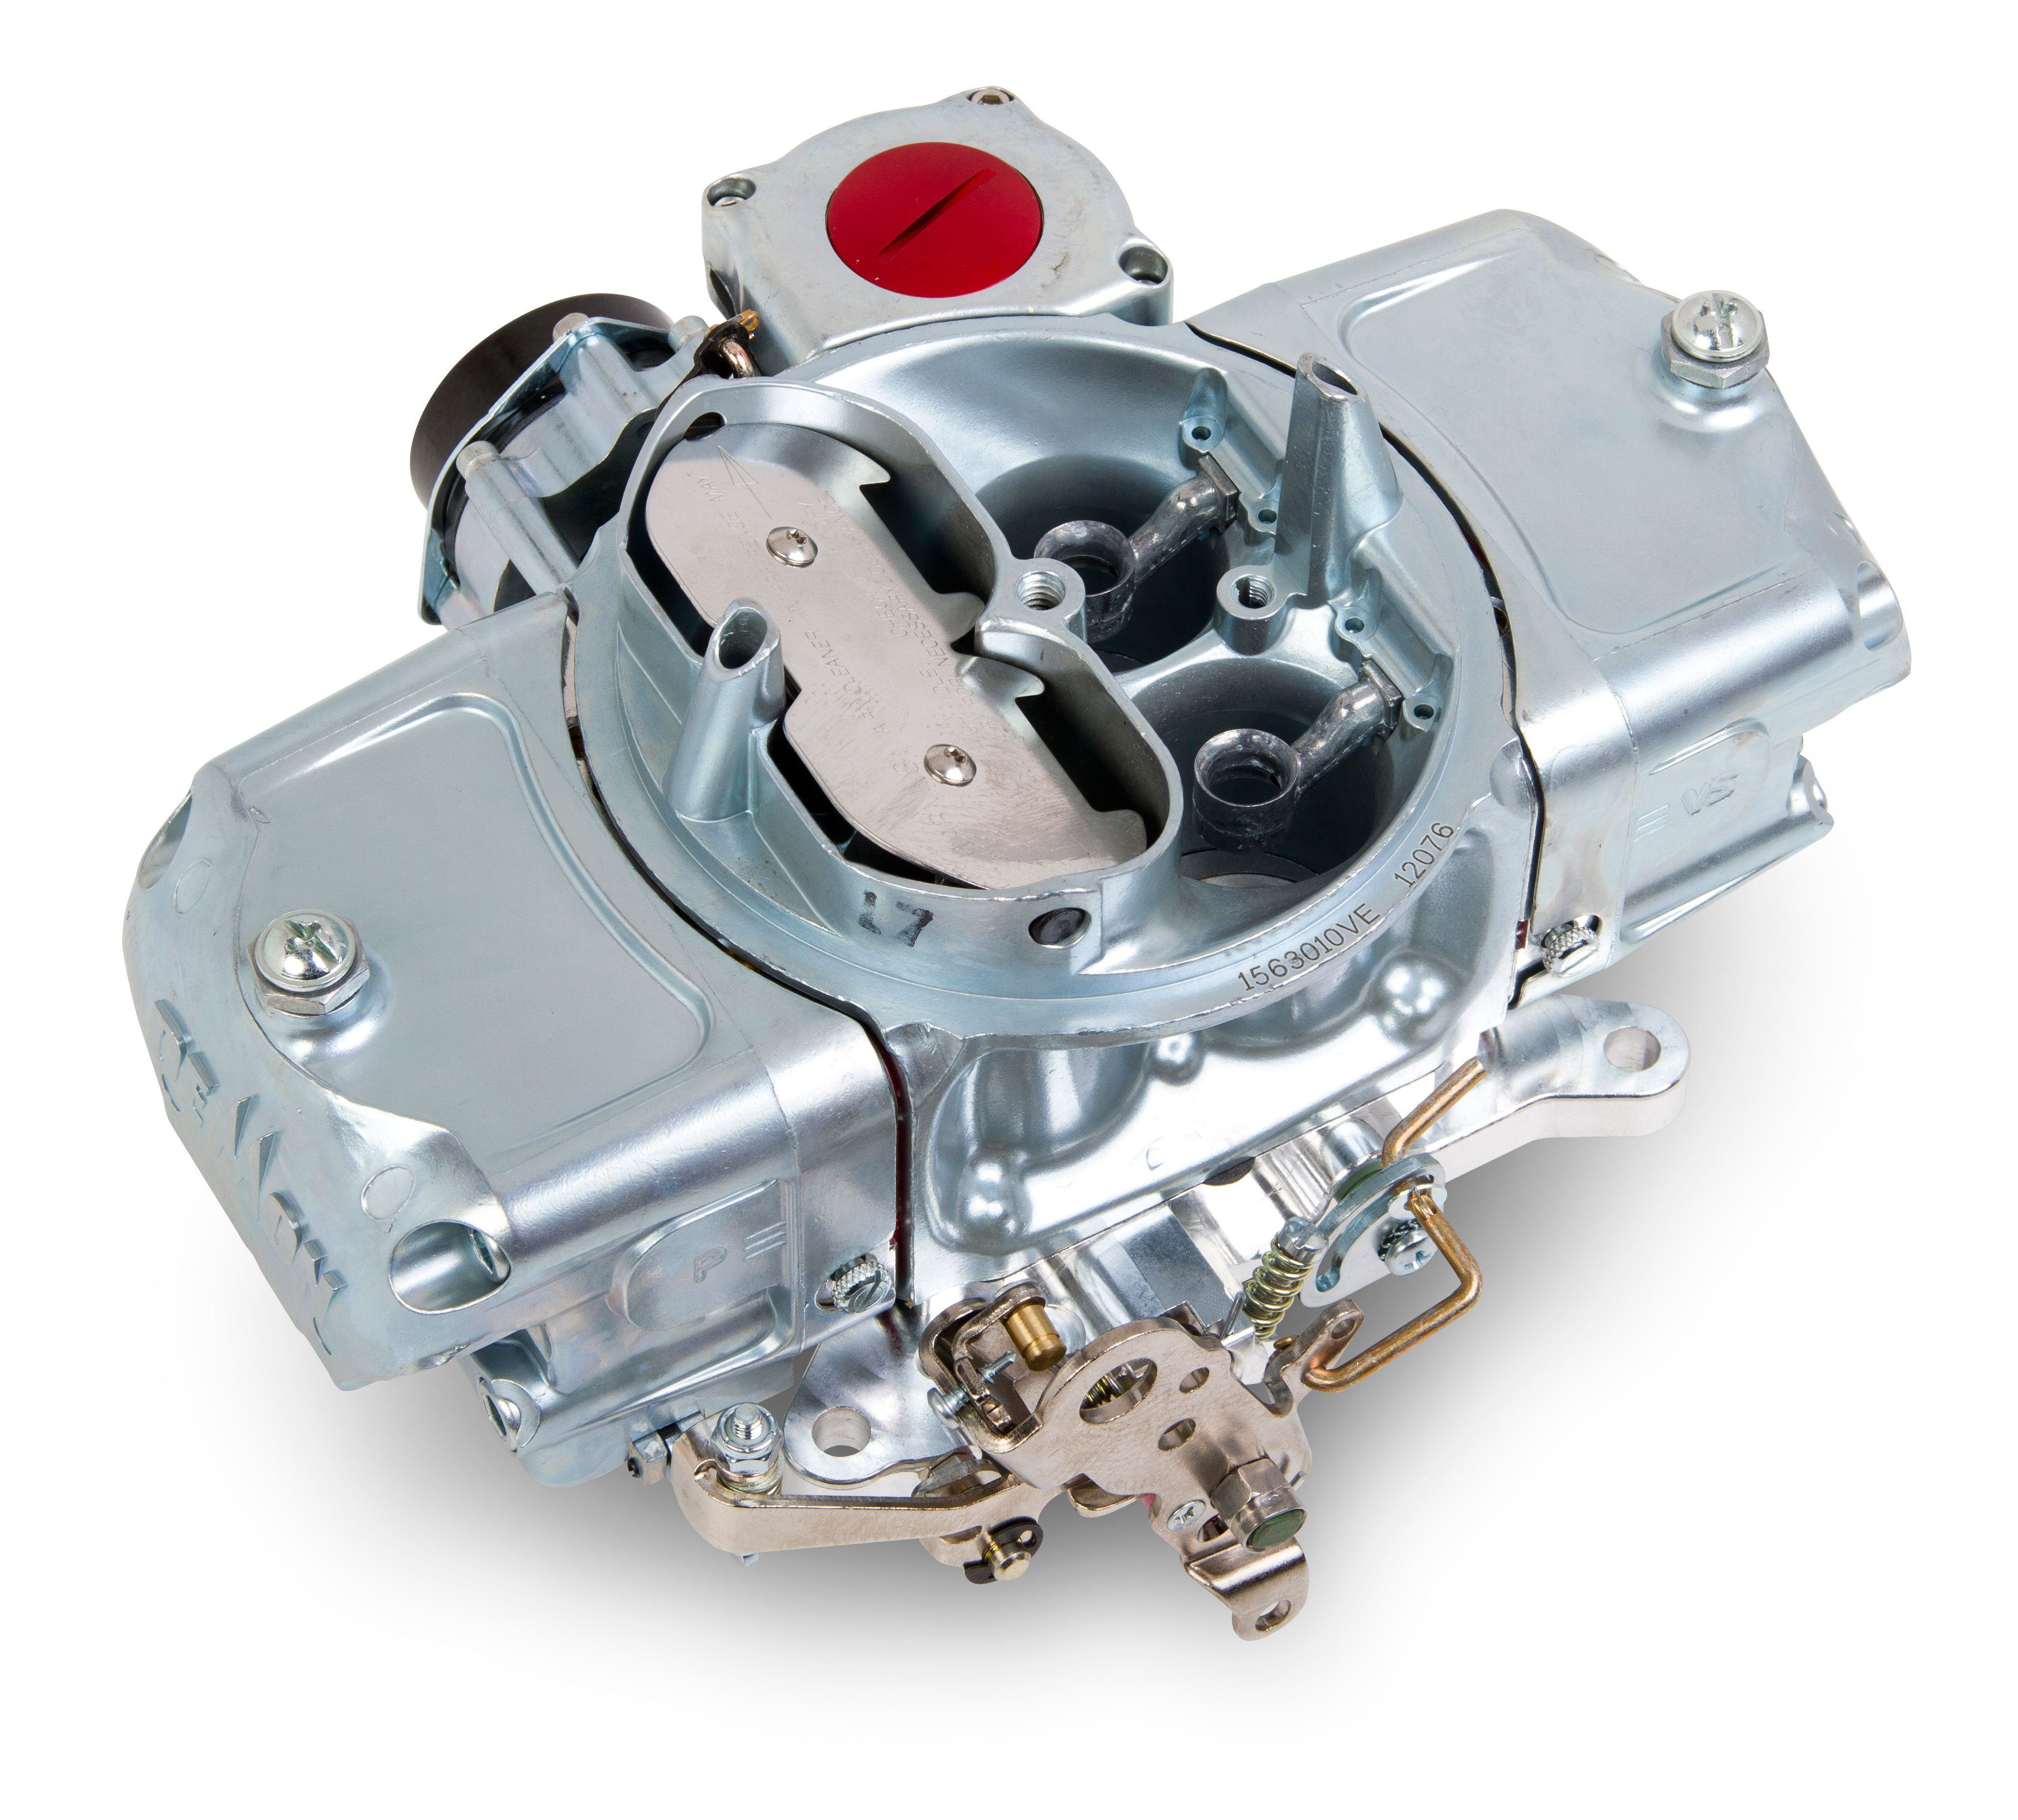 1563010vev2 speed demon holley performance products Barry Grant Carburetors at aneh.co